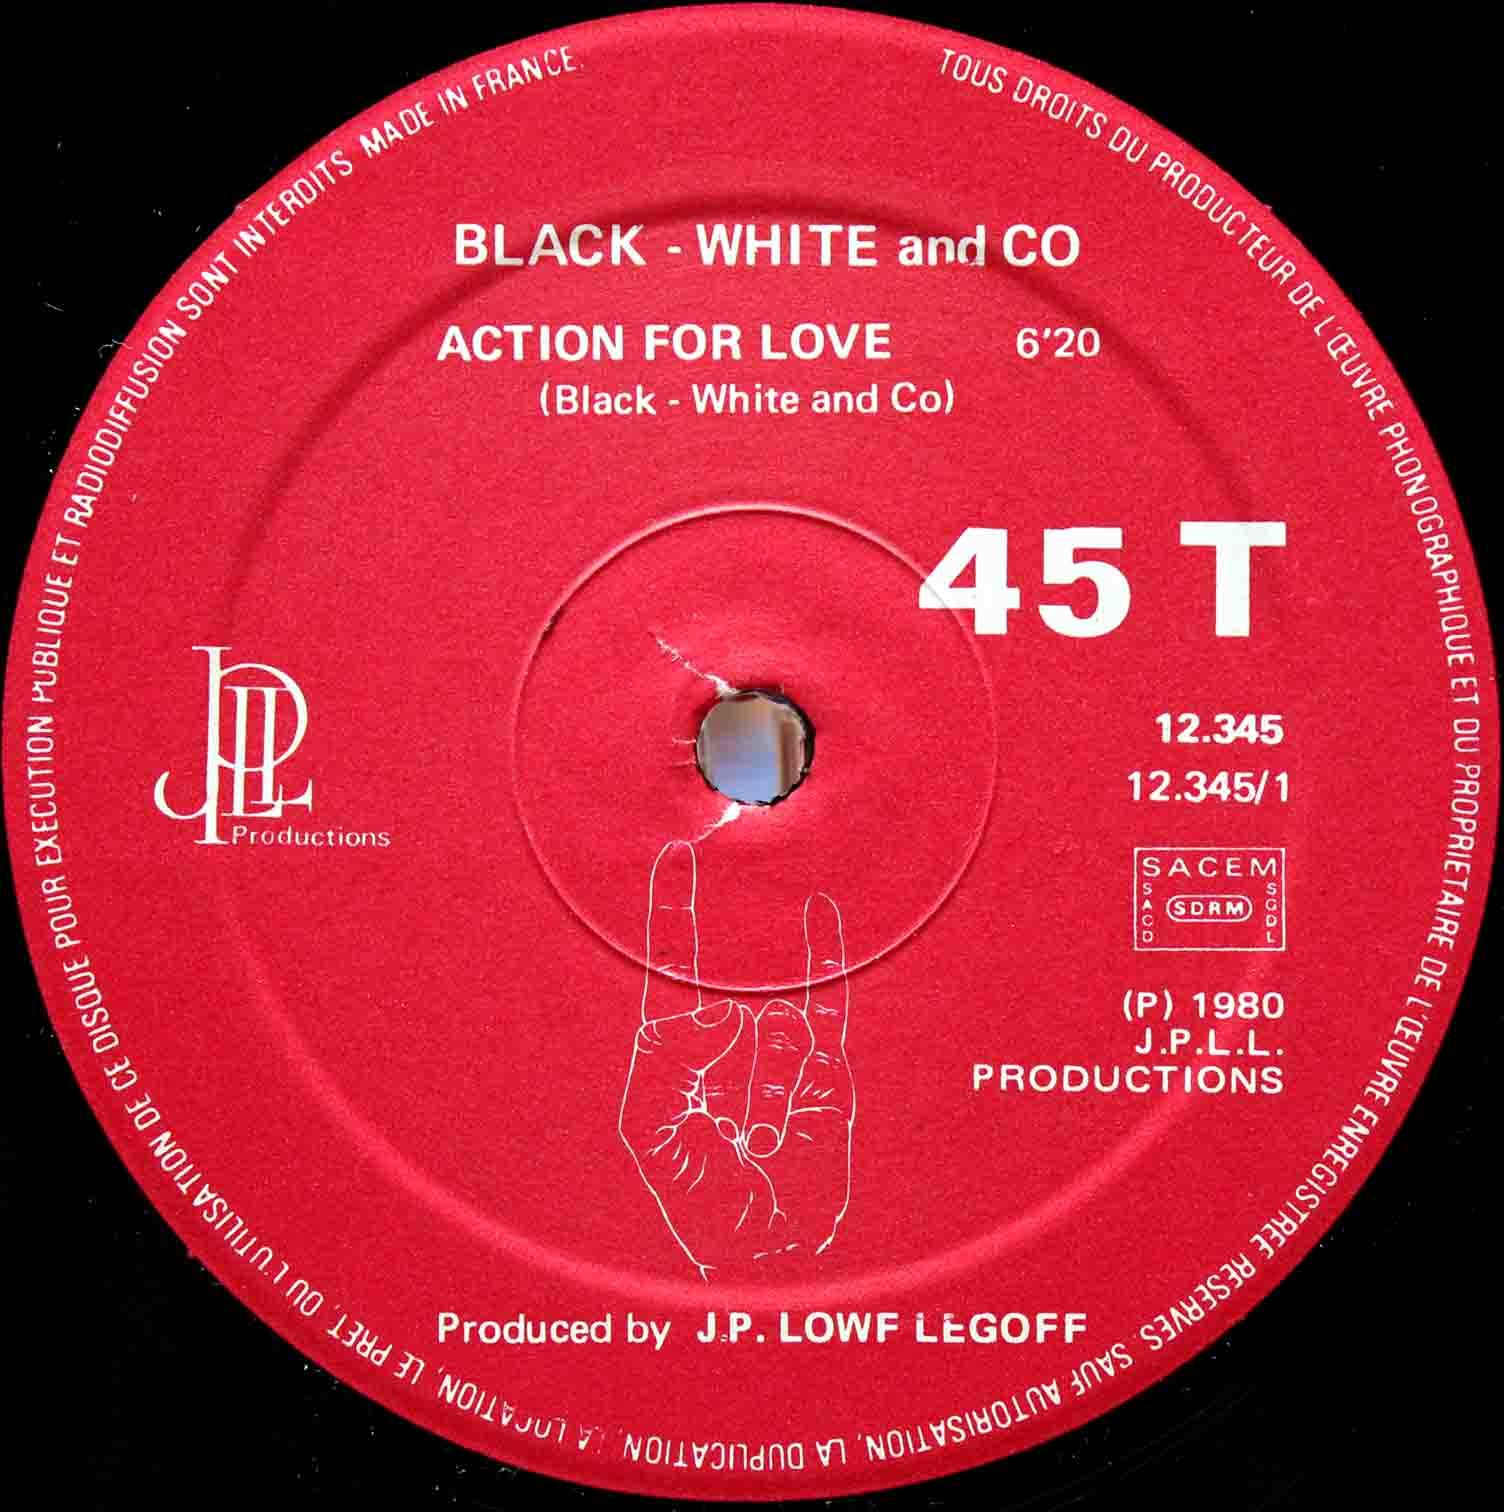 Black White And Co – Action For Love France 03